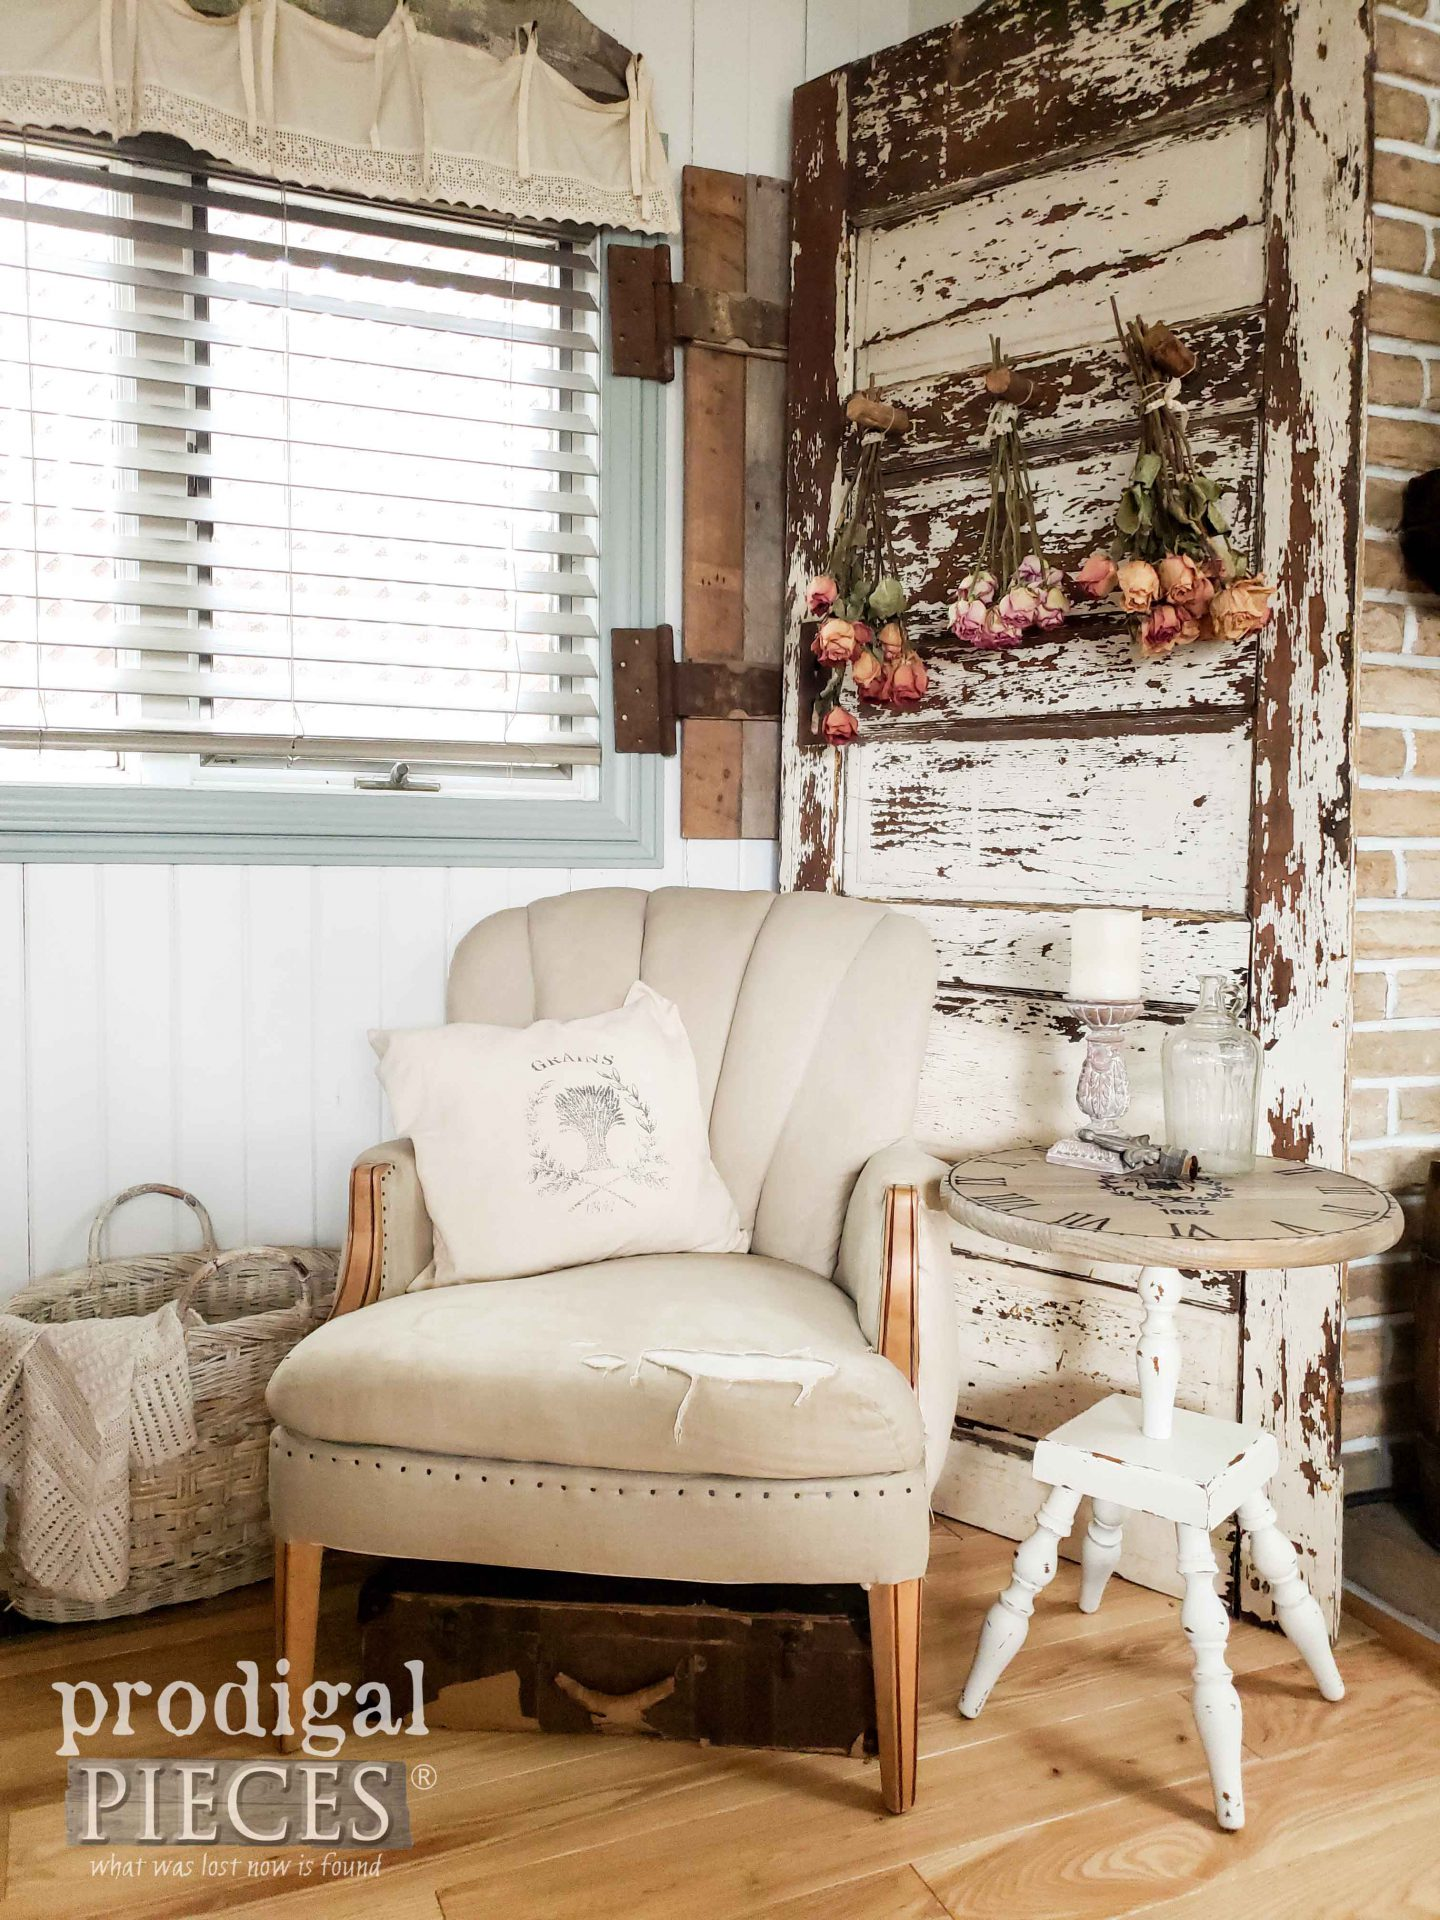 Farmhouse Style Living Room with Thrifted Decor by Larissa of Prodigal Pieces | prodigalpieces.com #prodigalpieces #diy #home homedecor #farmhouse #furniture